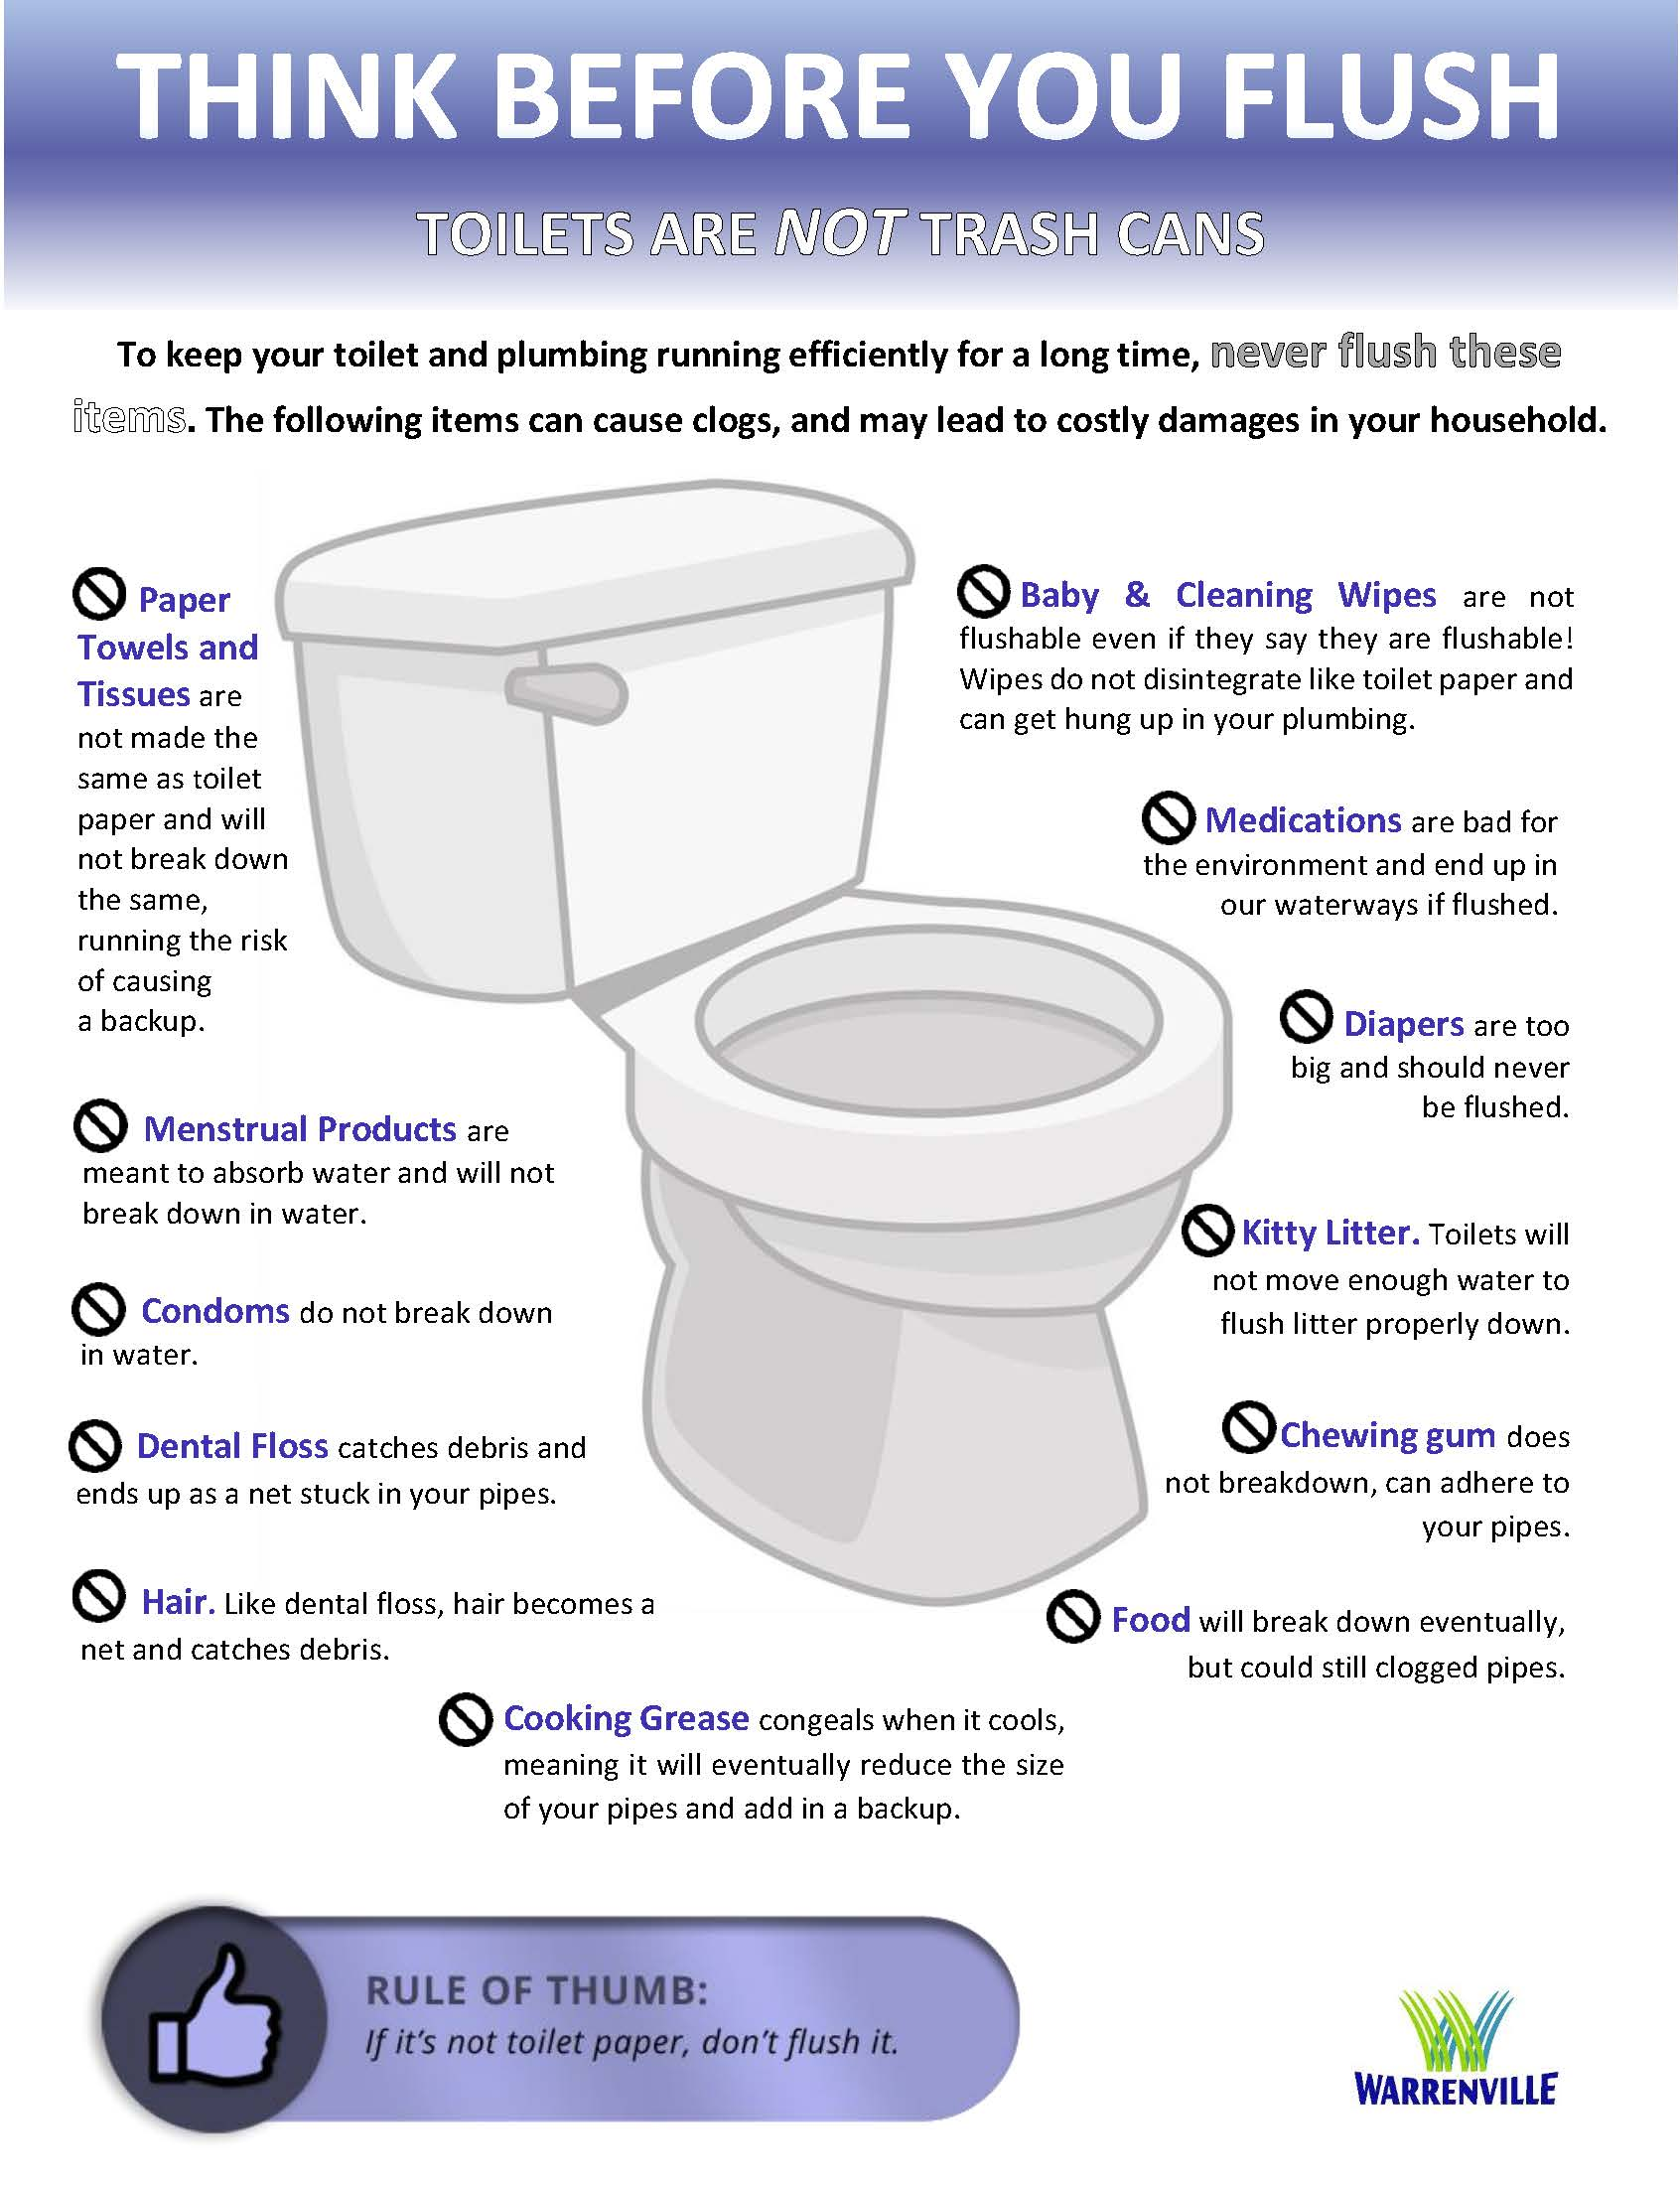 Image showing items that should not be flushed down the toilet